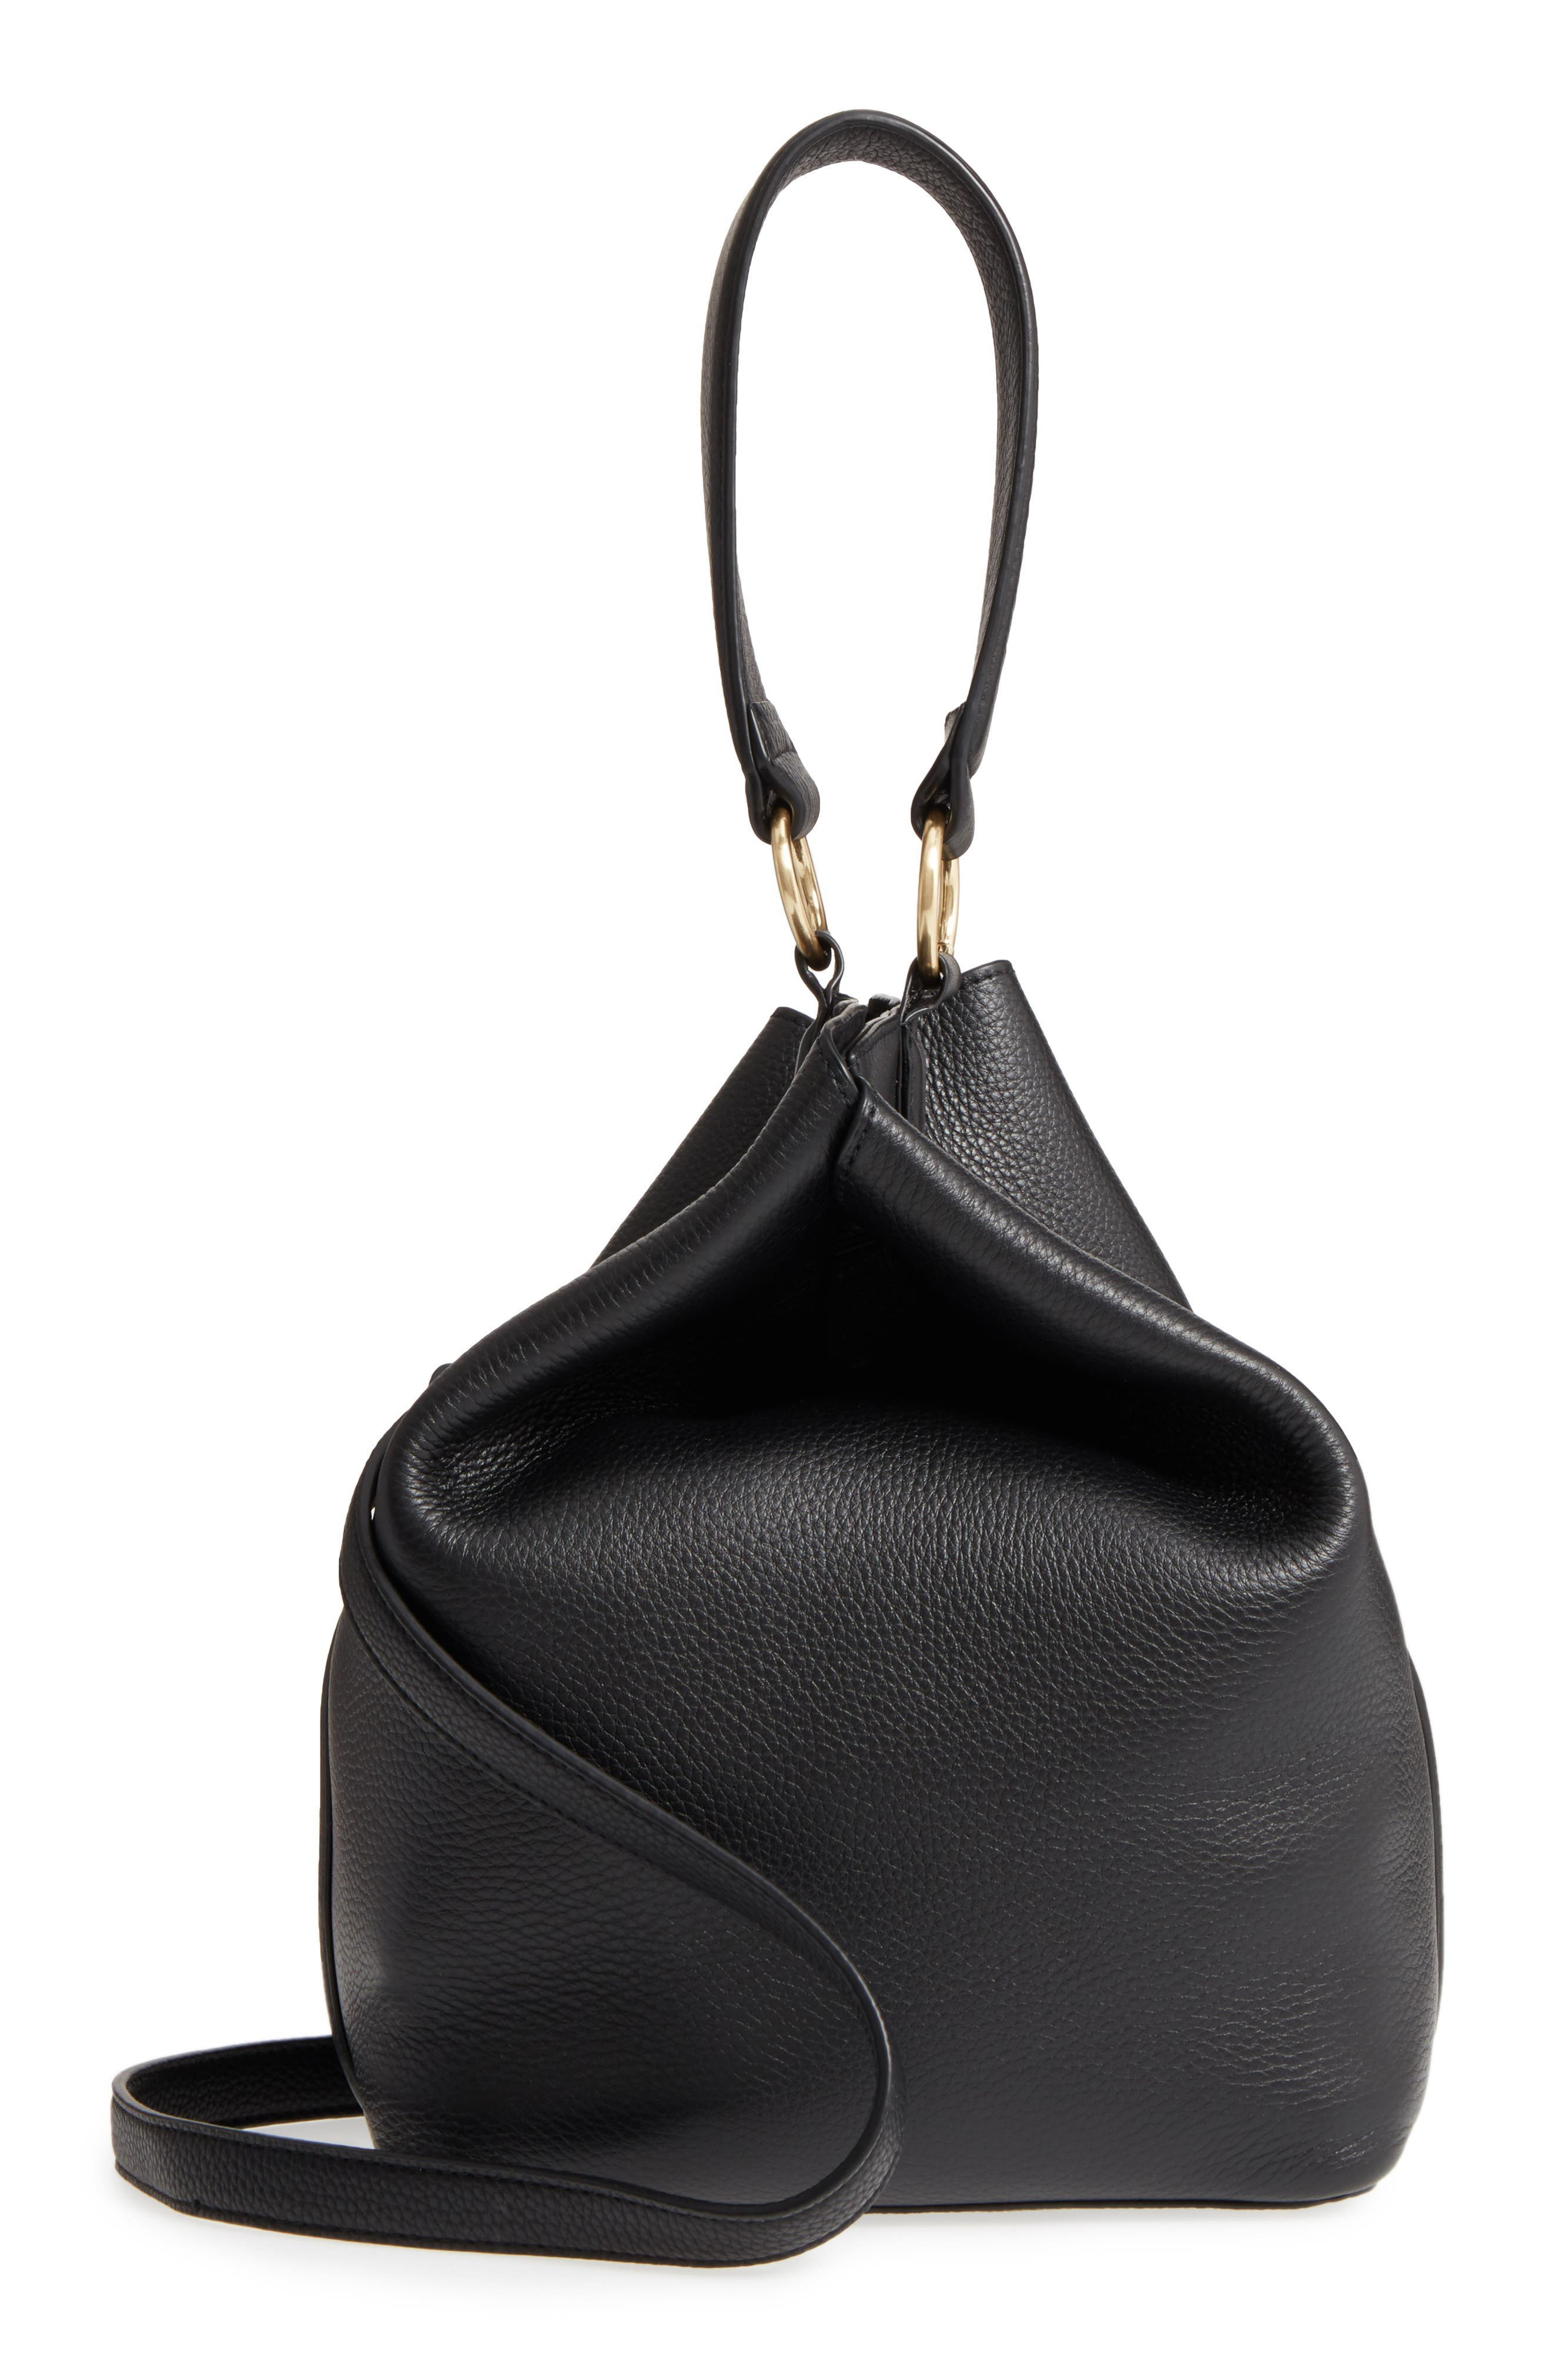 Renee Leather Bucket Bag,                             Main thumbnail 1, color,                             001